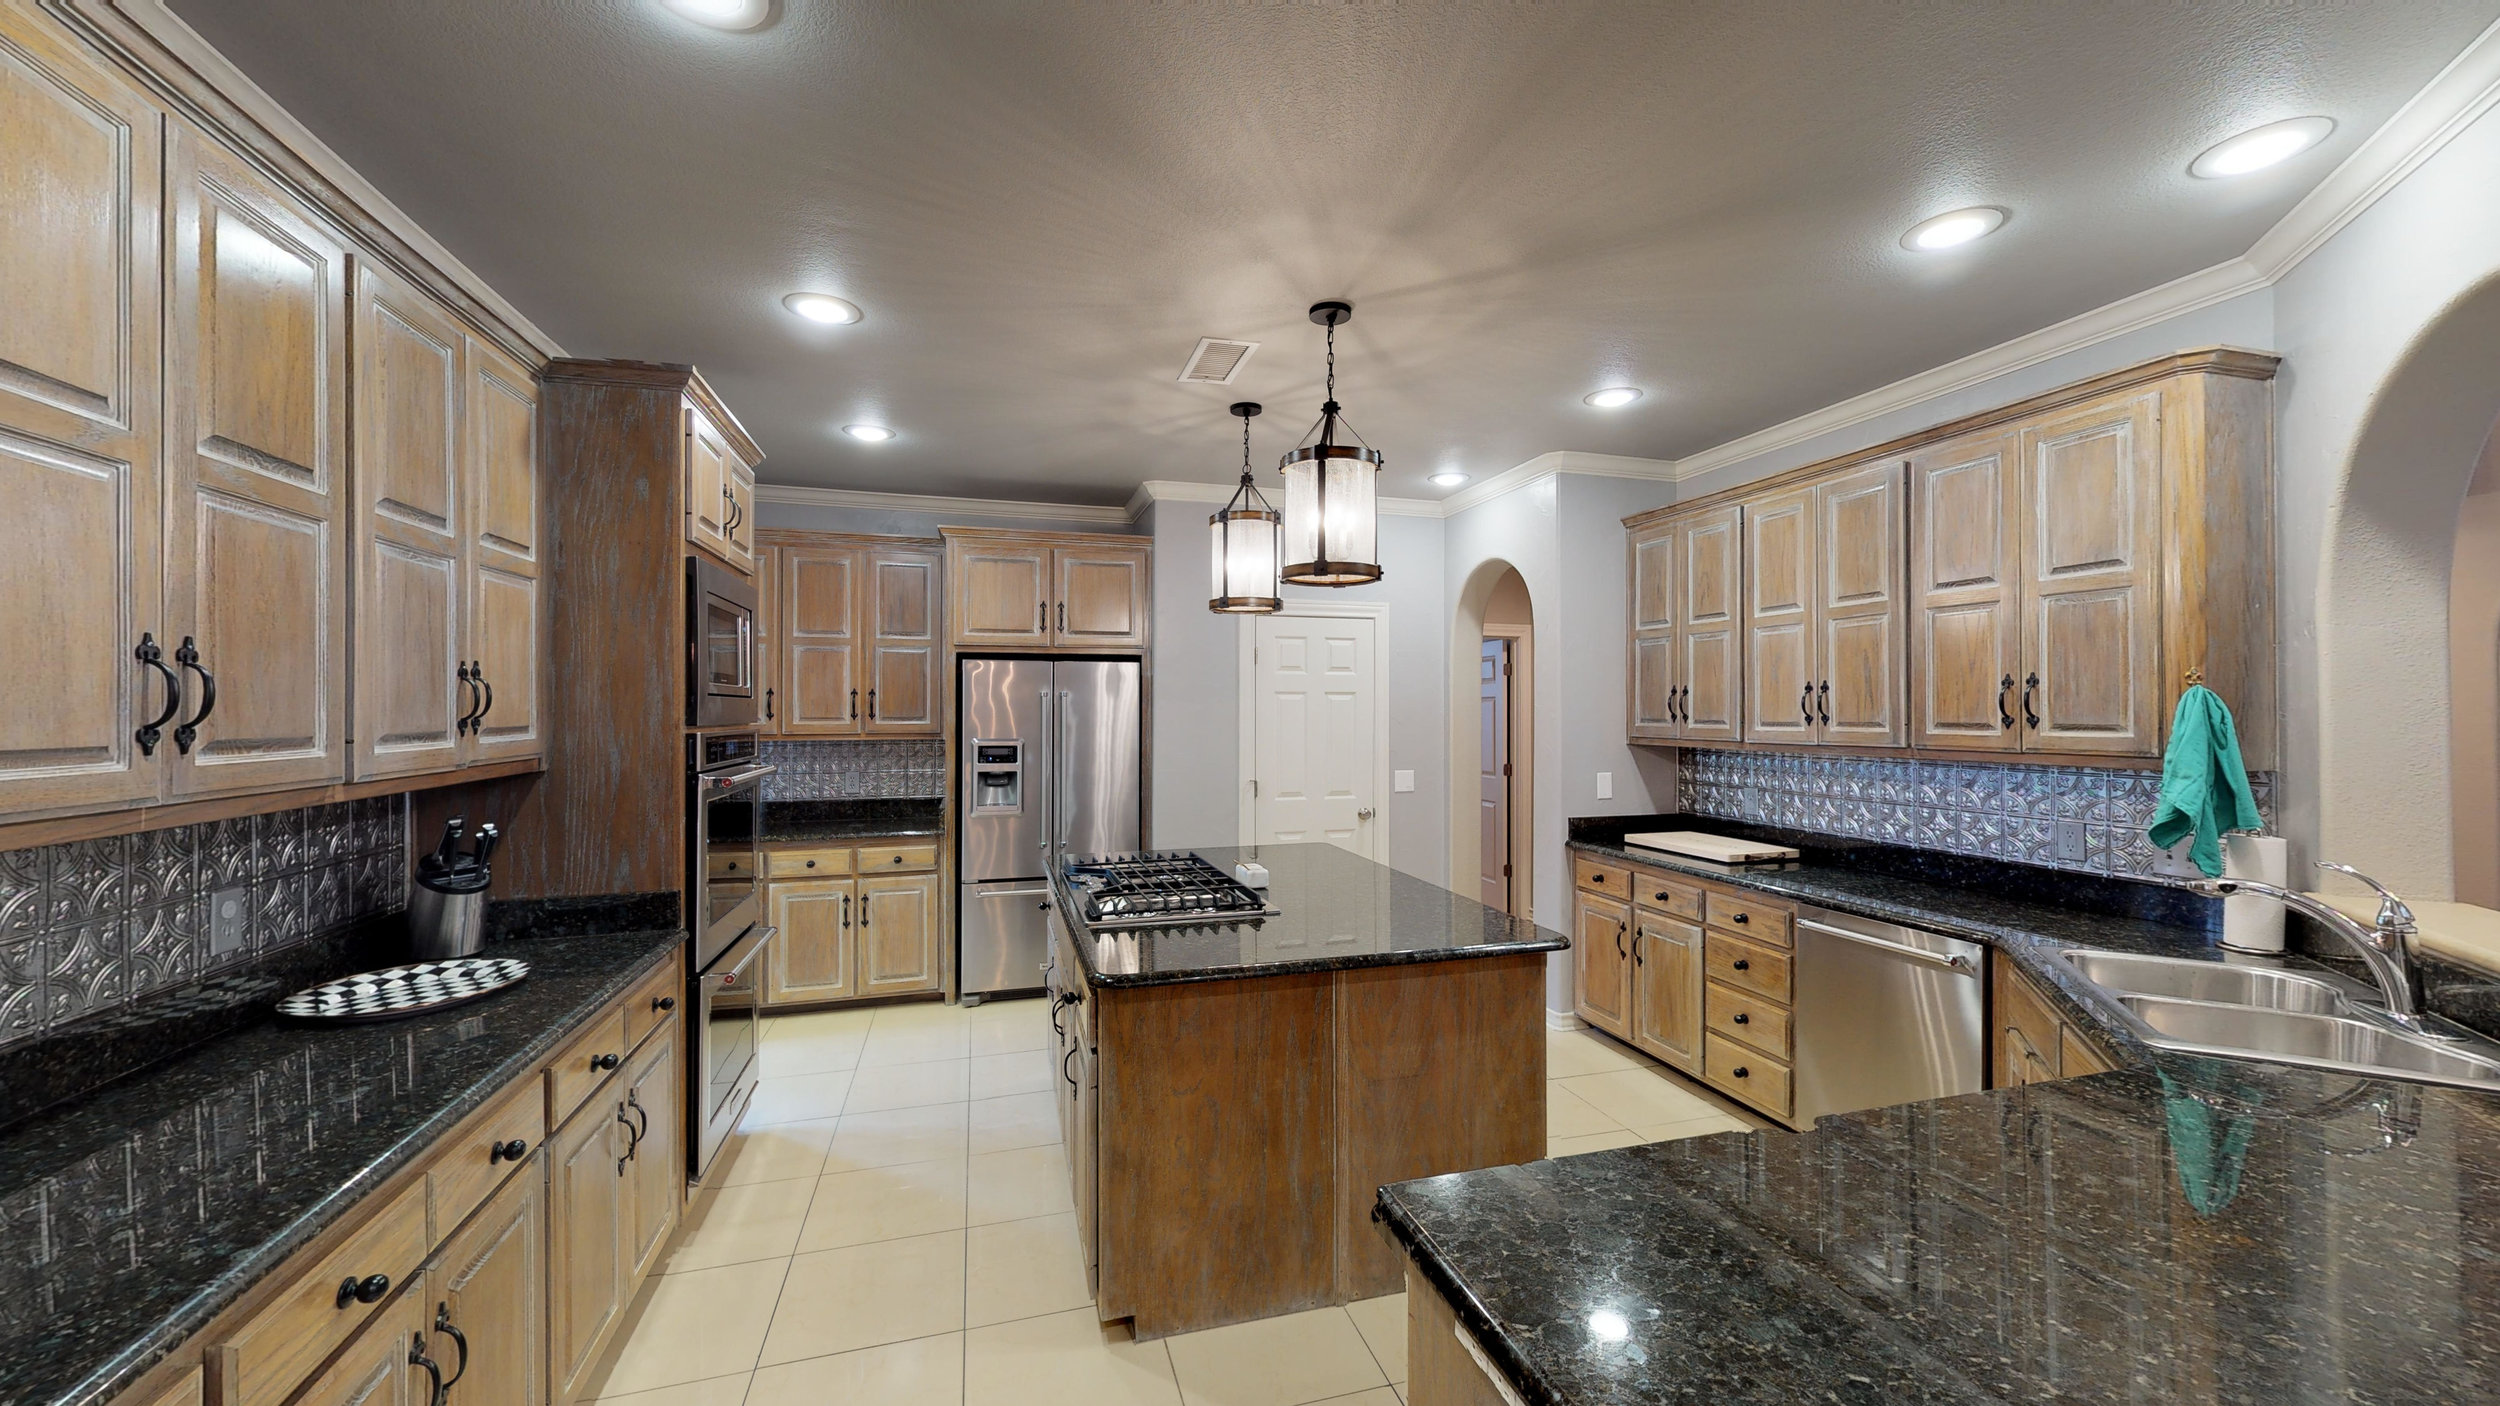 4502-Ashville-Place-Amarillo-TX-79119-Kitchen-1.jpg